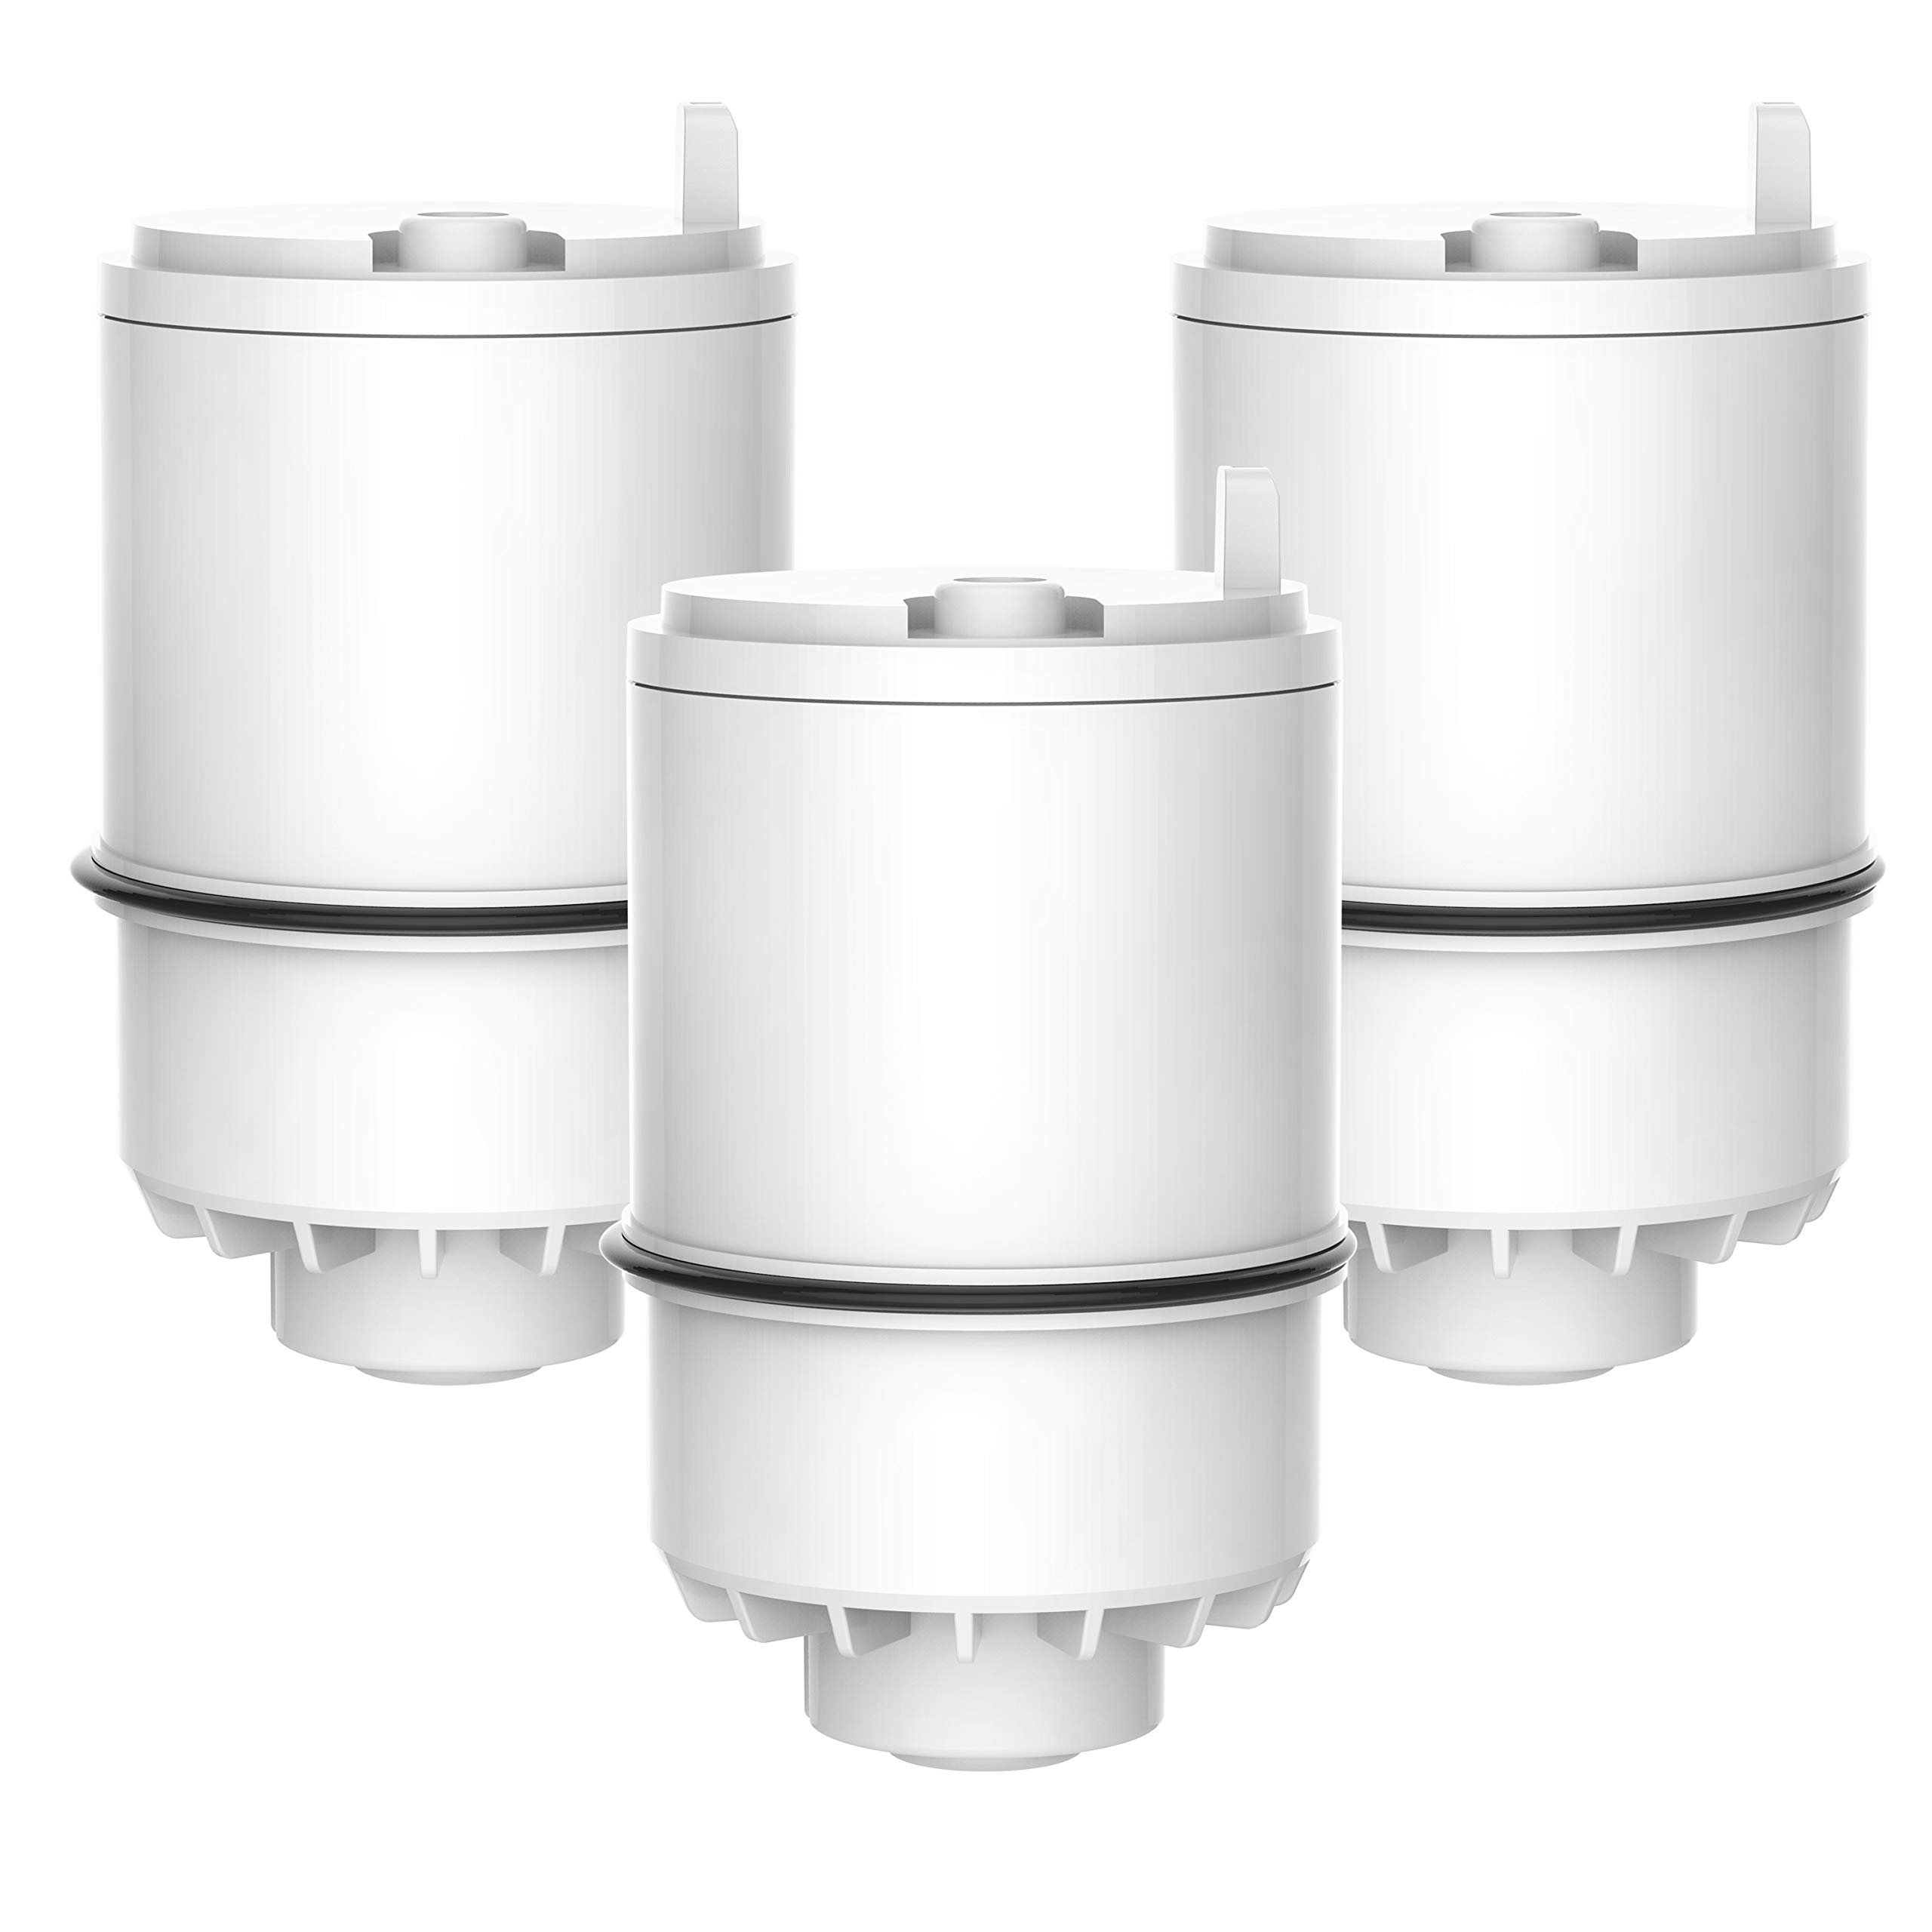 Waterdrop RF 3375 Water Filter, Compatible with Pur RF-3375 Faucet Water Filter (Pack of 3)